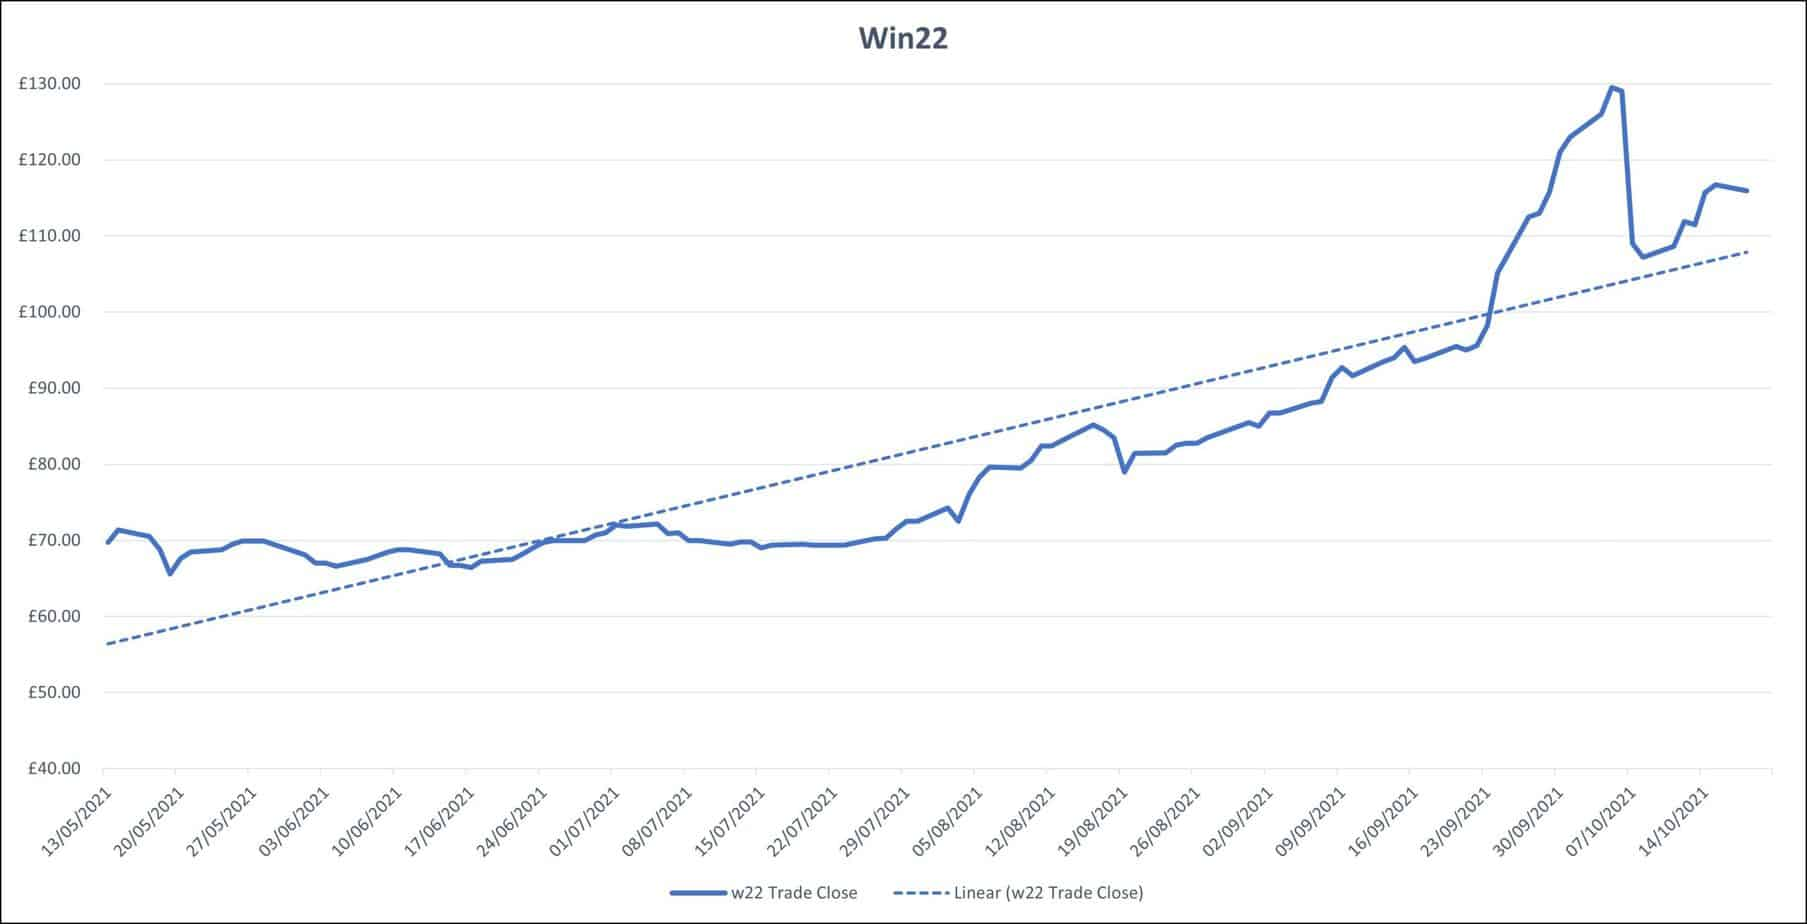 winter 2022 electricity prices